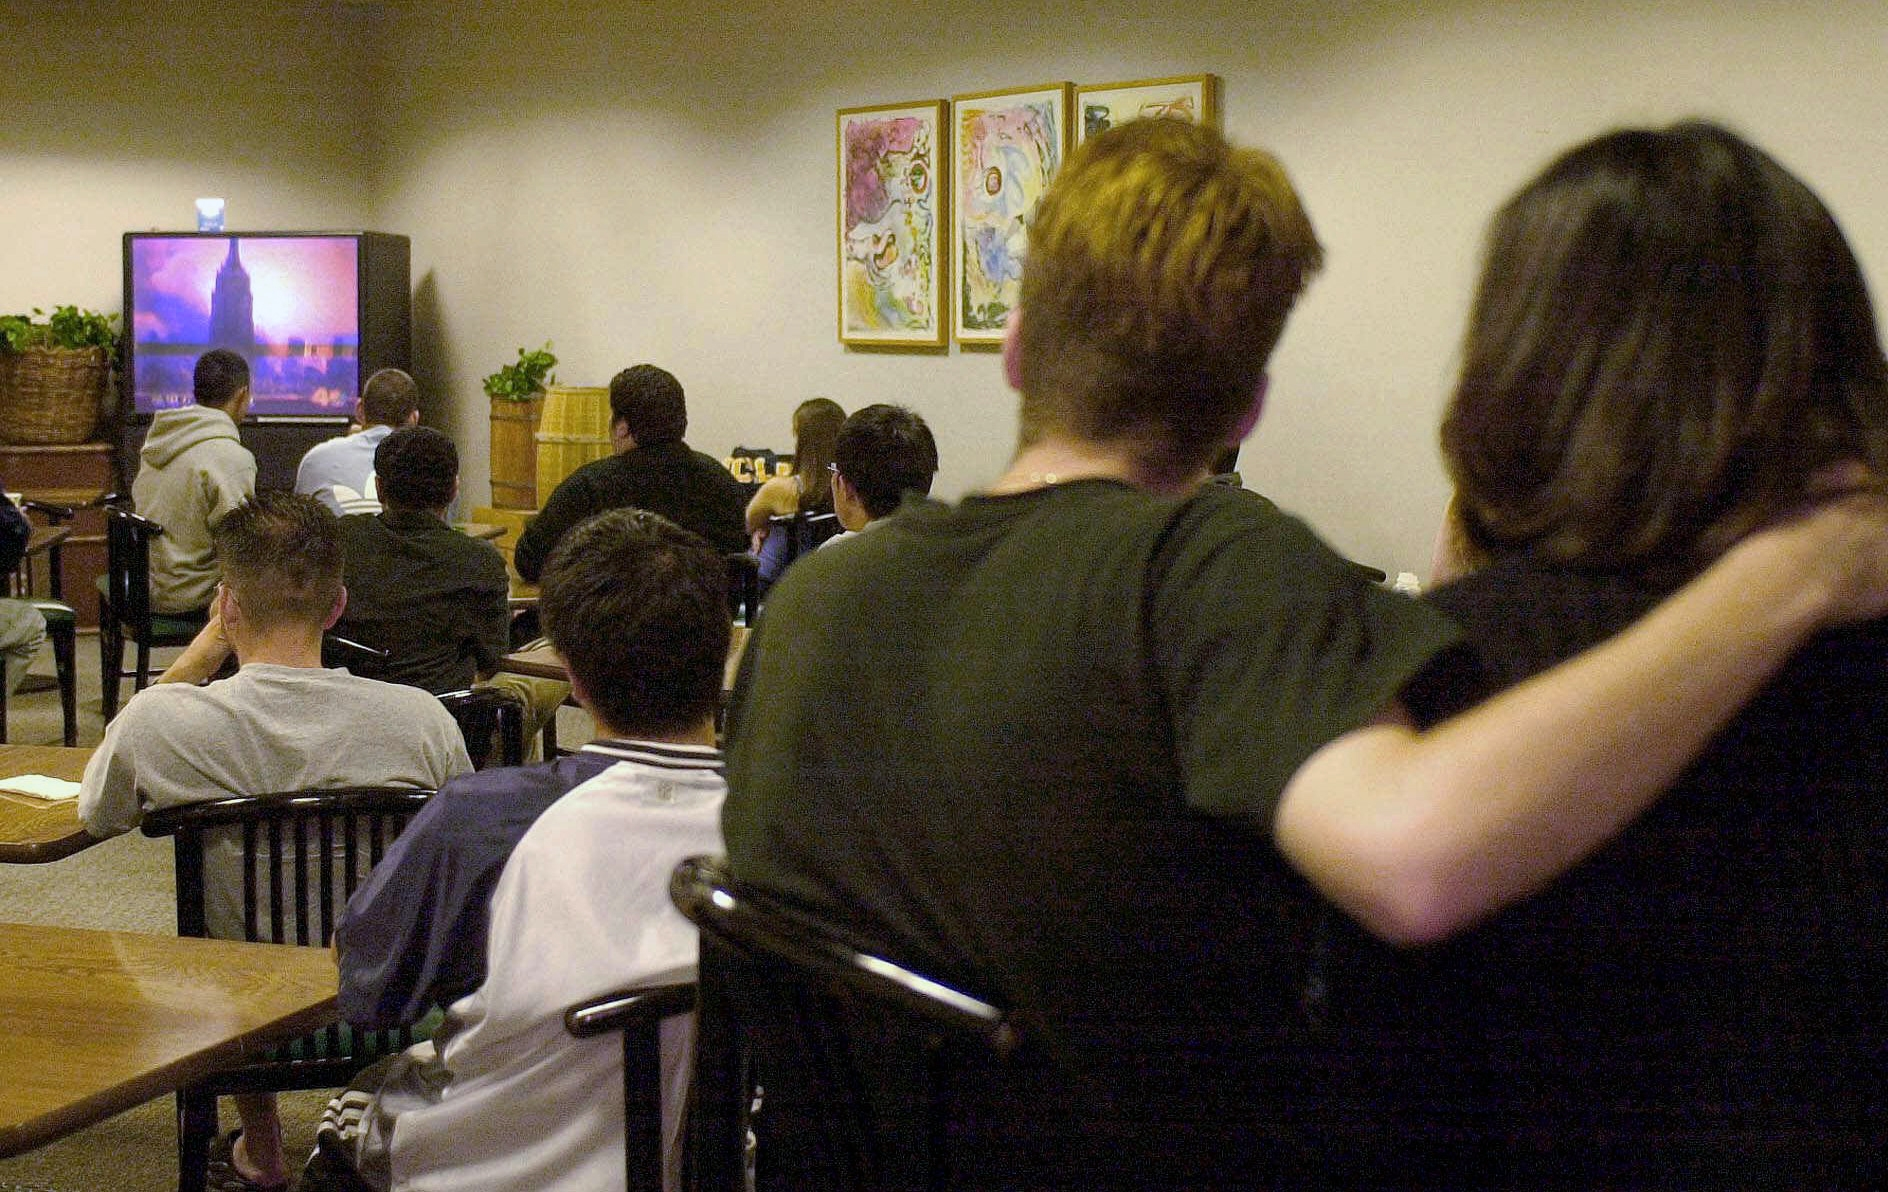 On Sept. 11, 2001, students and others at Ackerman Student Union at UCLA in Los Angeles watch TV coverage of the terror attacks on New York City.